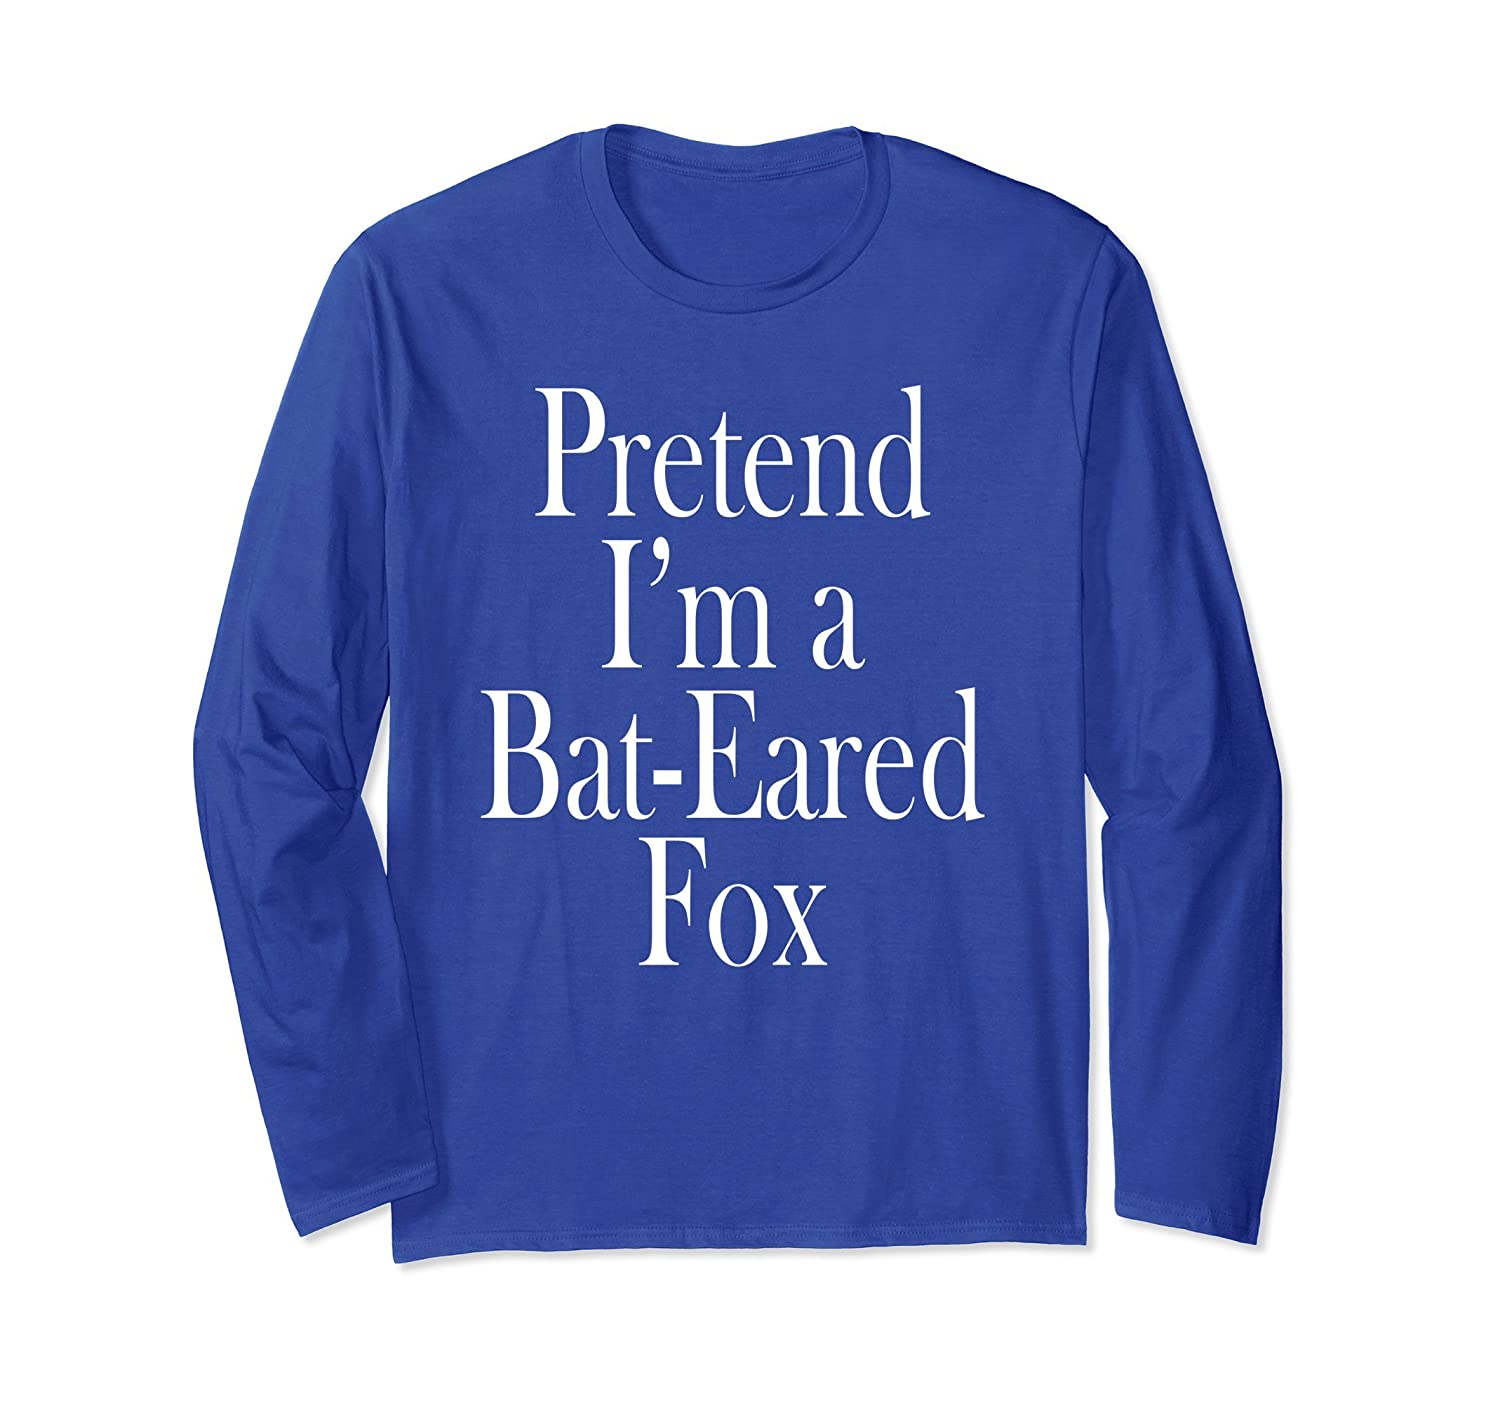 Bat Eared Fox Costume Long Sleeve Tee for Last Minute Party-mt